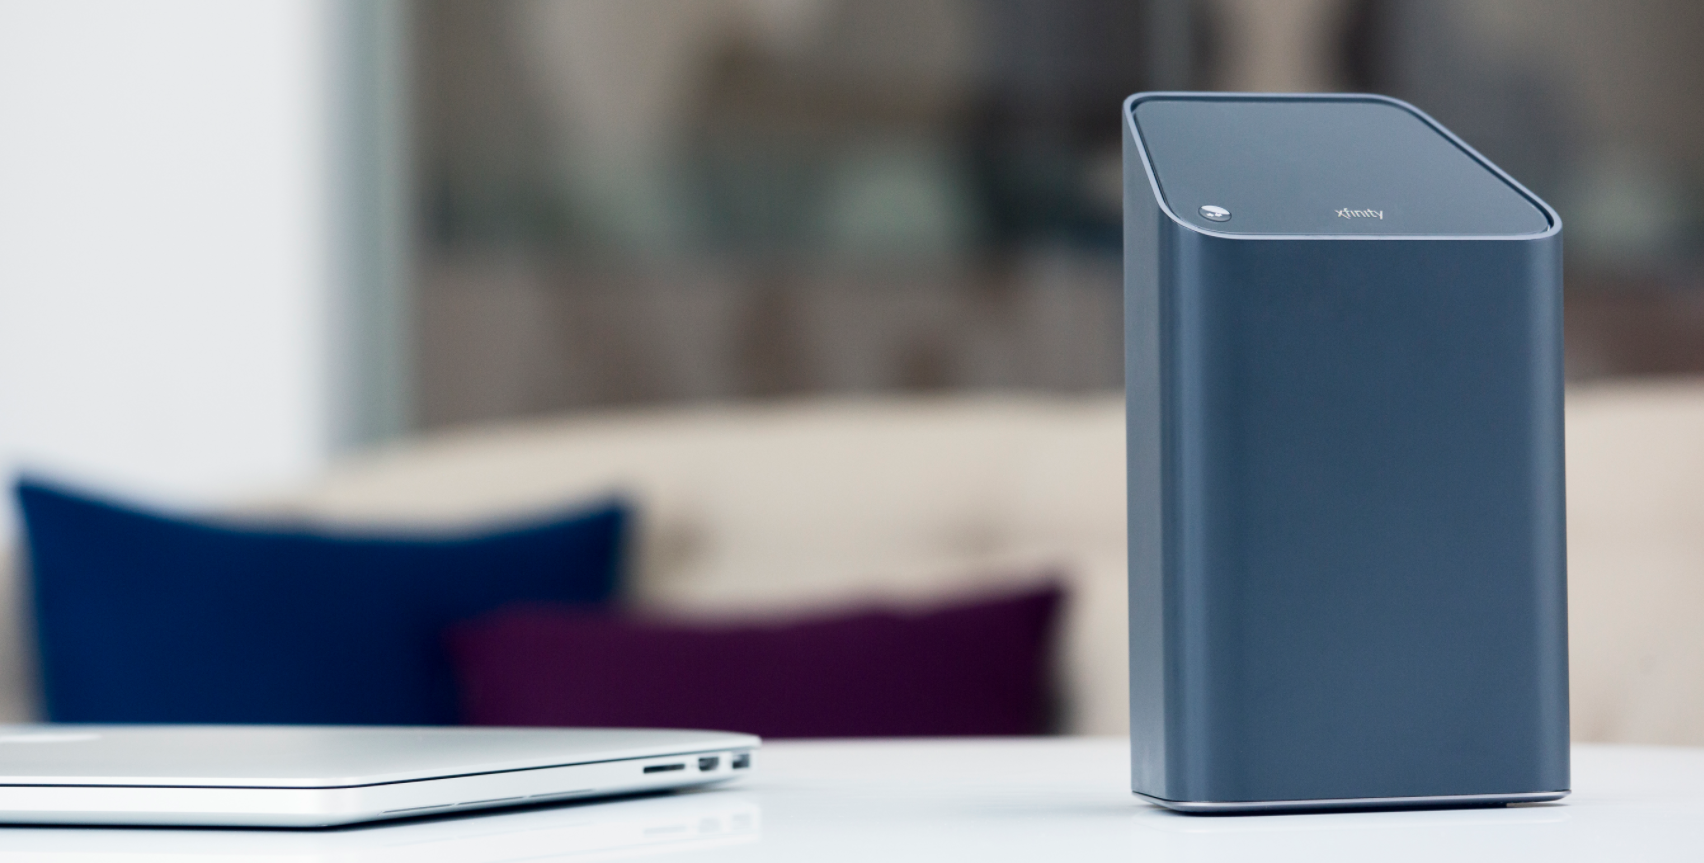 Comcast's new Wi-Fi router might not belong in the trash - BGR